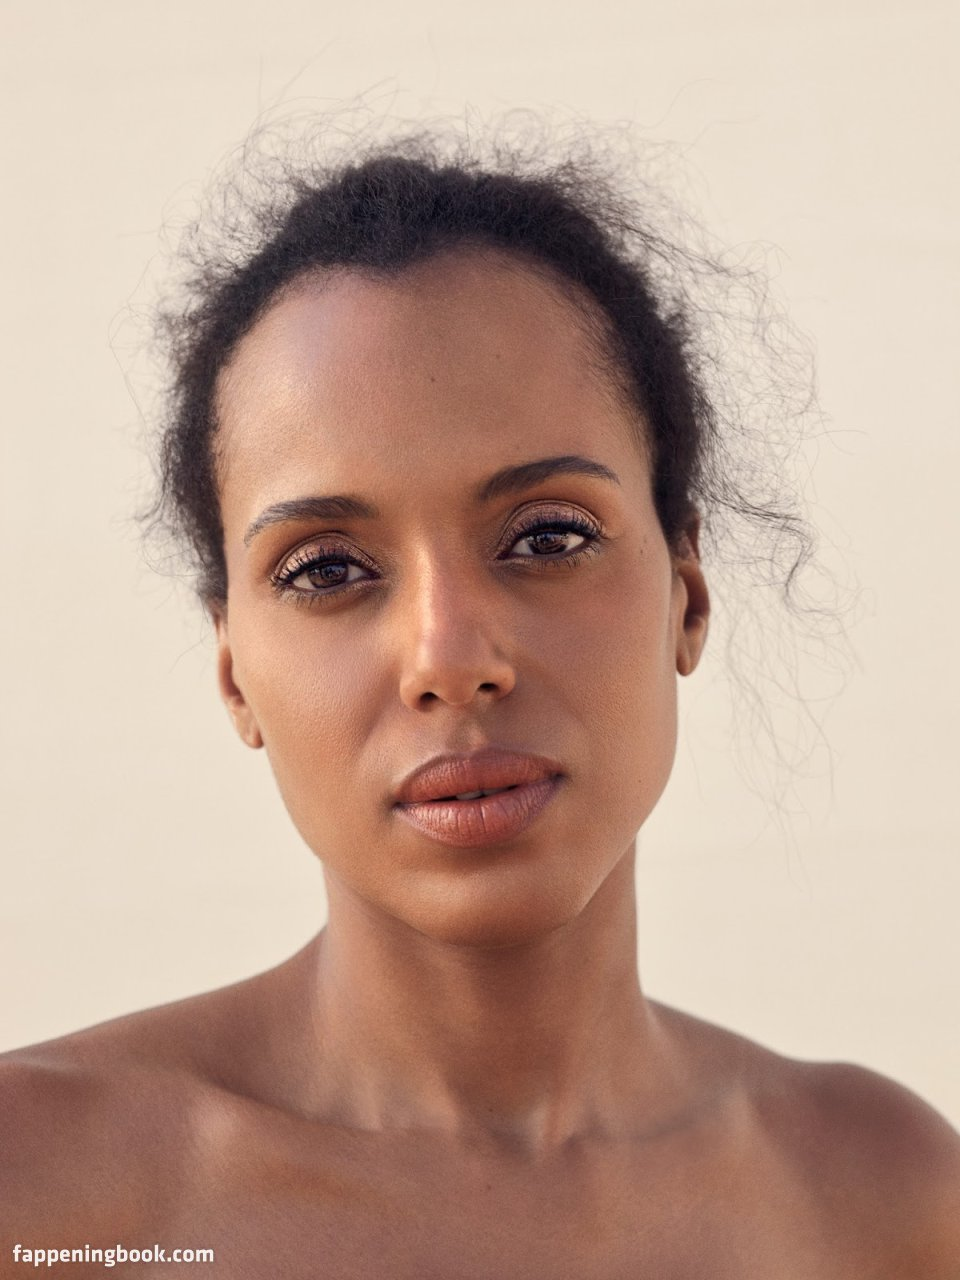 Kerry Washington Nude, Sexy, The Fappening, Uncensored